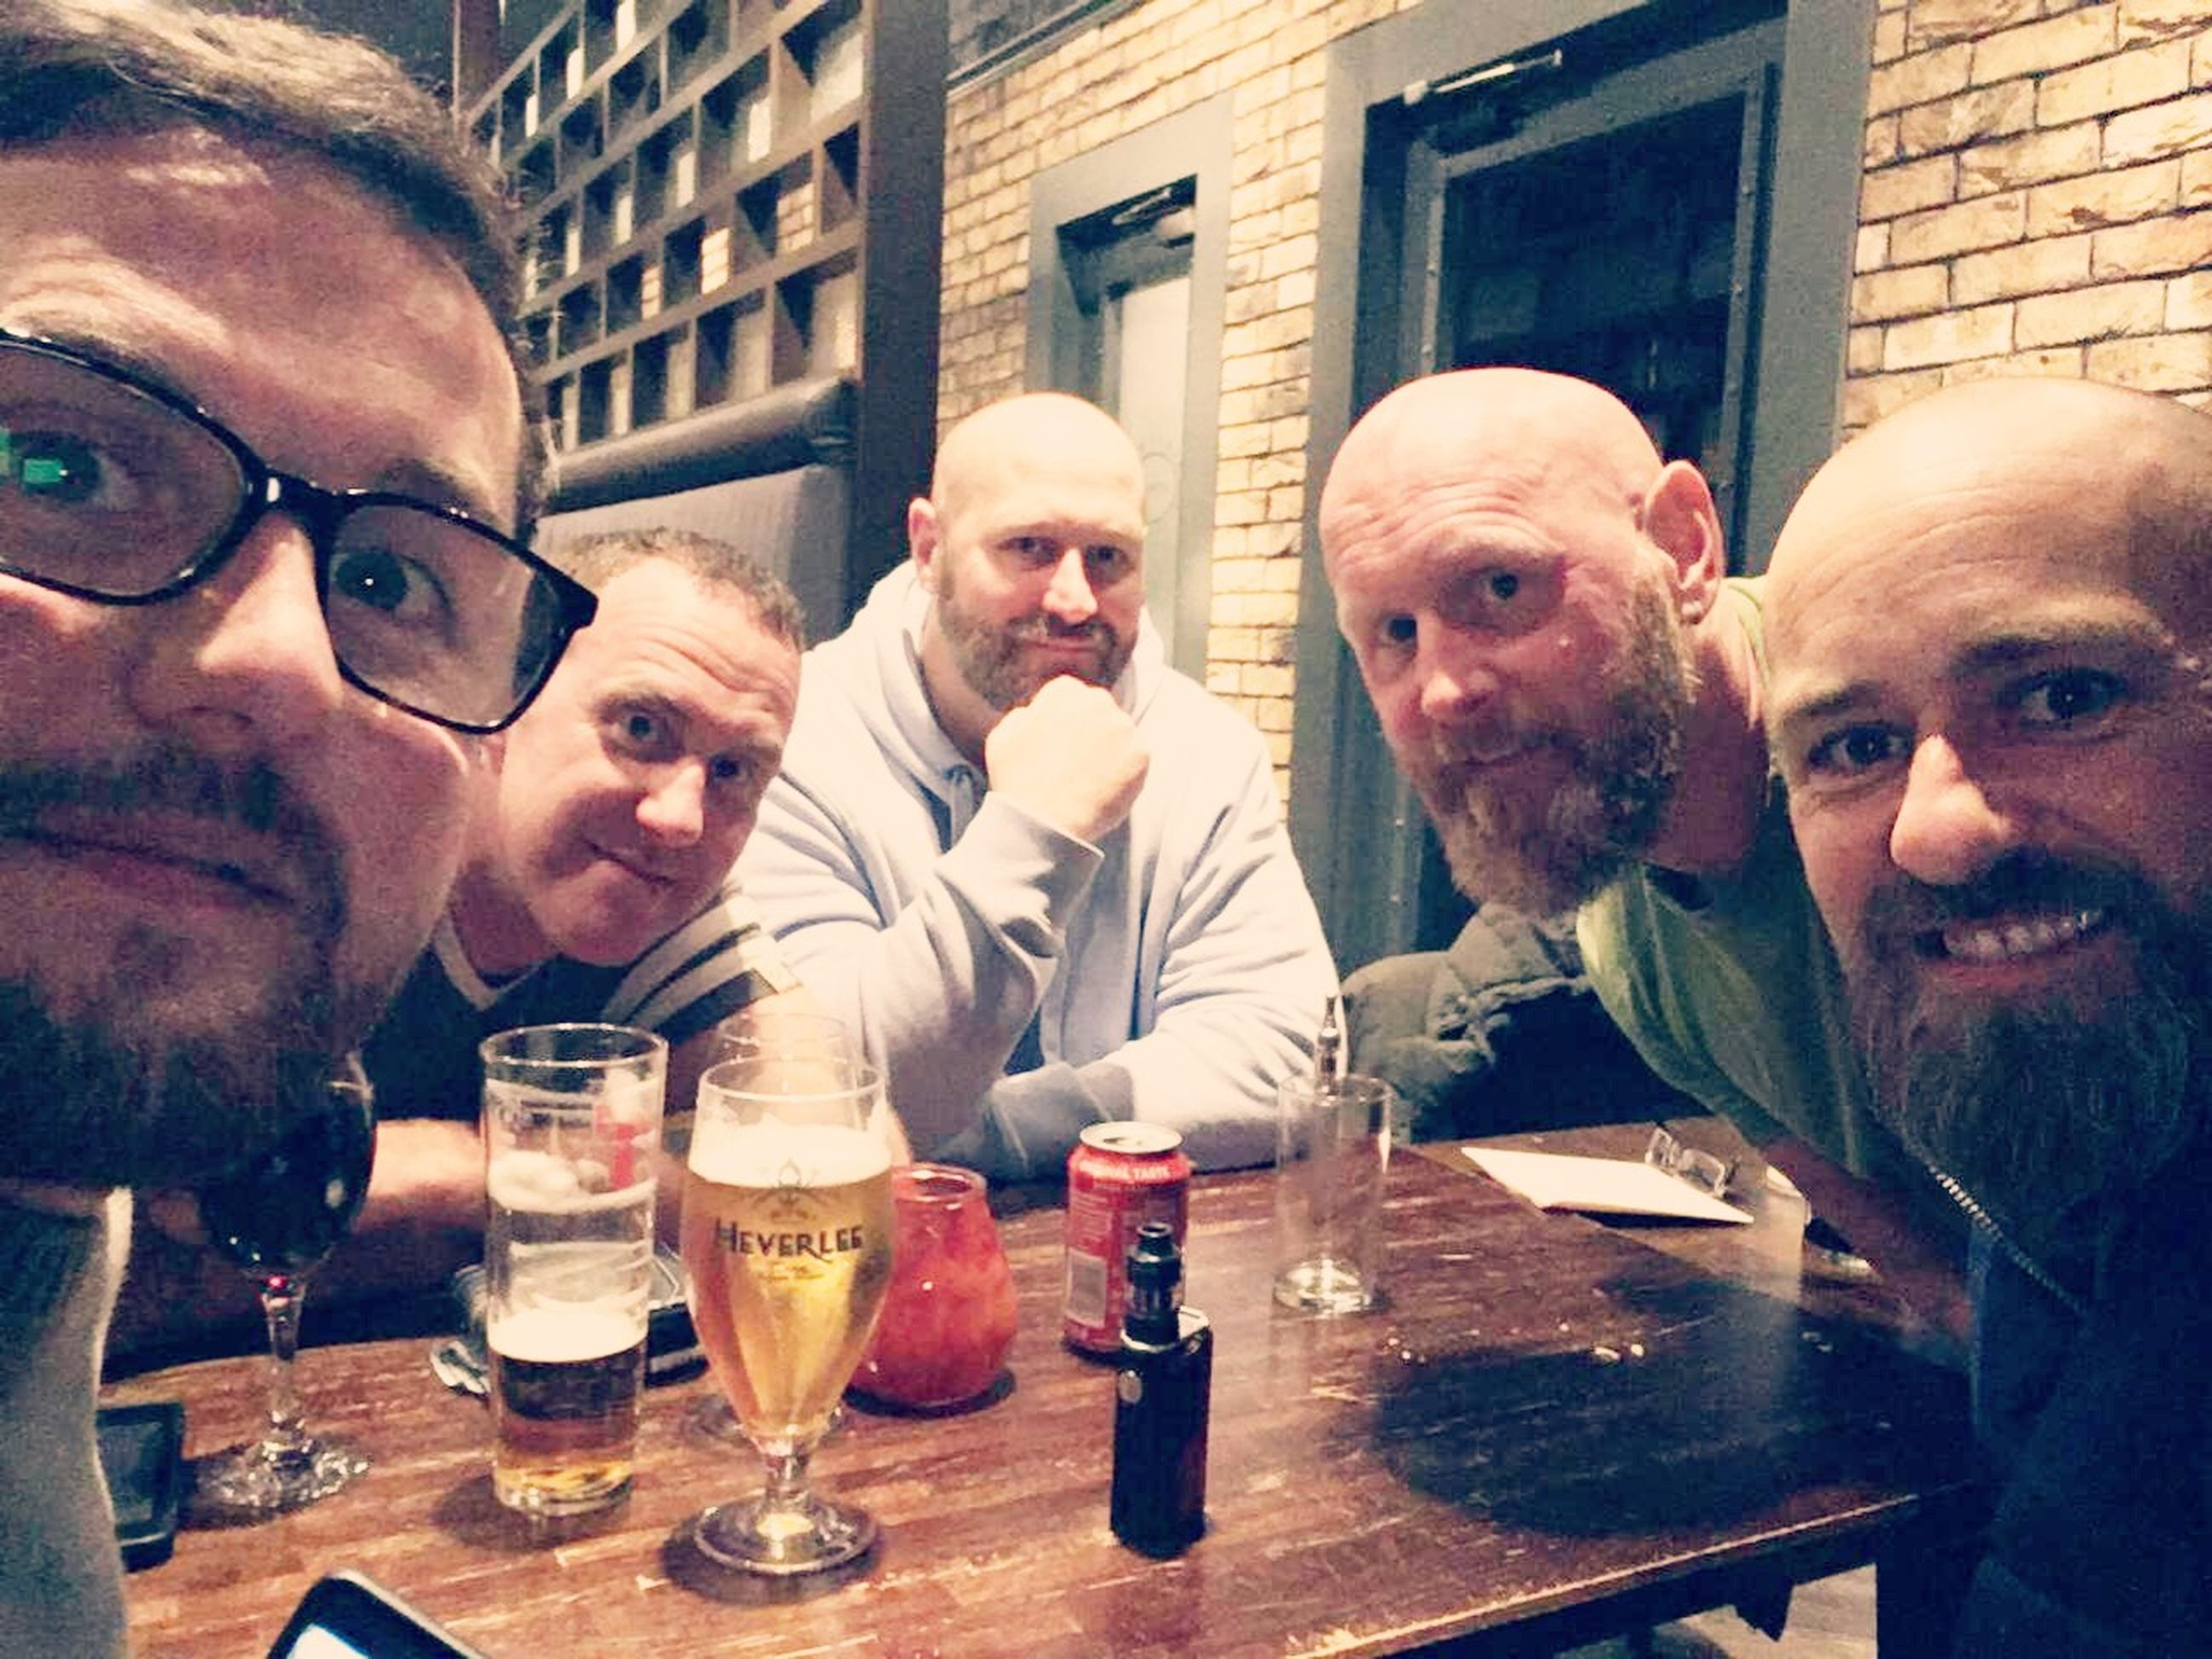 group of people, beard, table, portrait, facial hair, real people, looking at camera, refreshment, young men, men, alcohol, mid adult men, leisure activity, food and drink, front view, lifestyles, drink, people, friendship, glass, mustache